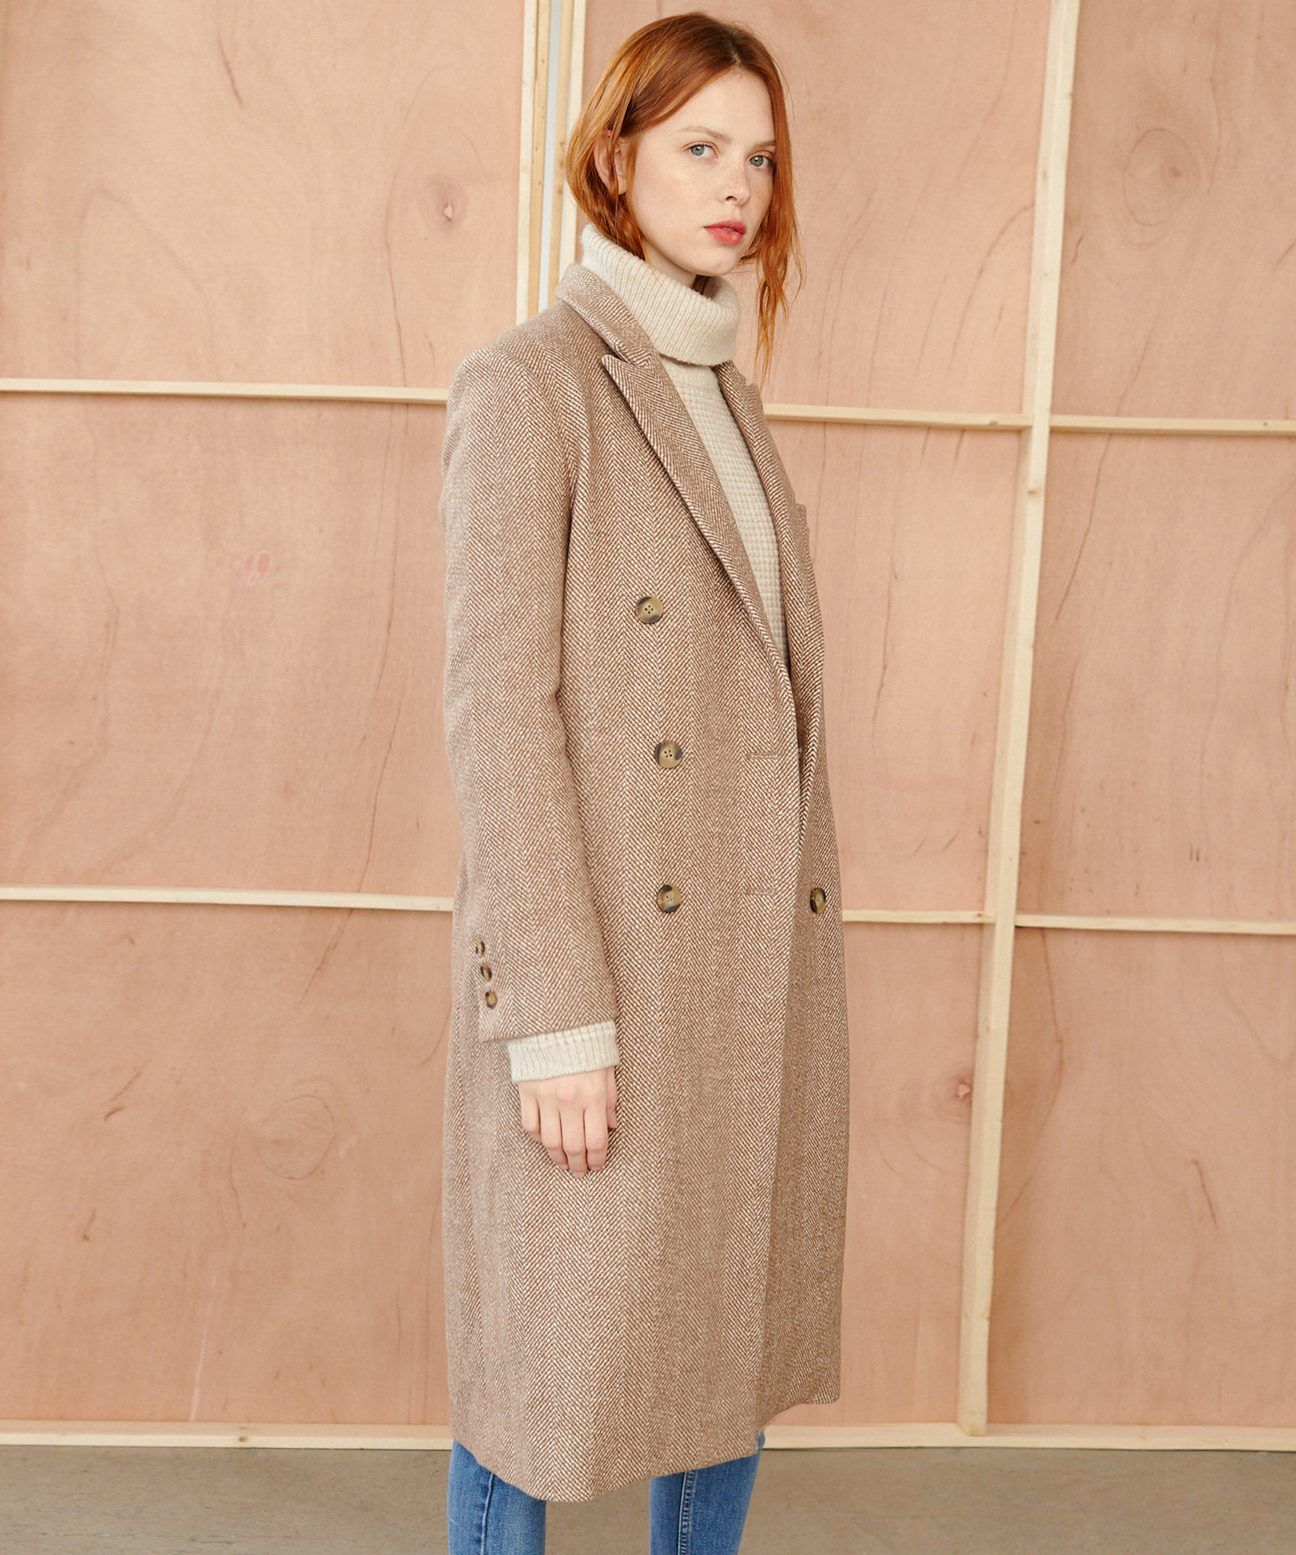 The wool herringbone coat is made of an Italian wool blend with a touch of  cashmere. With an oversized f348a031f82